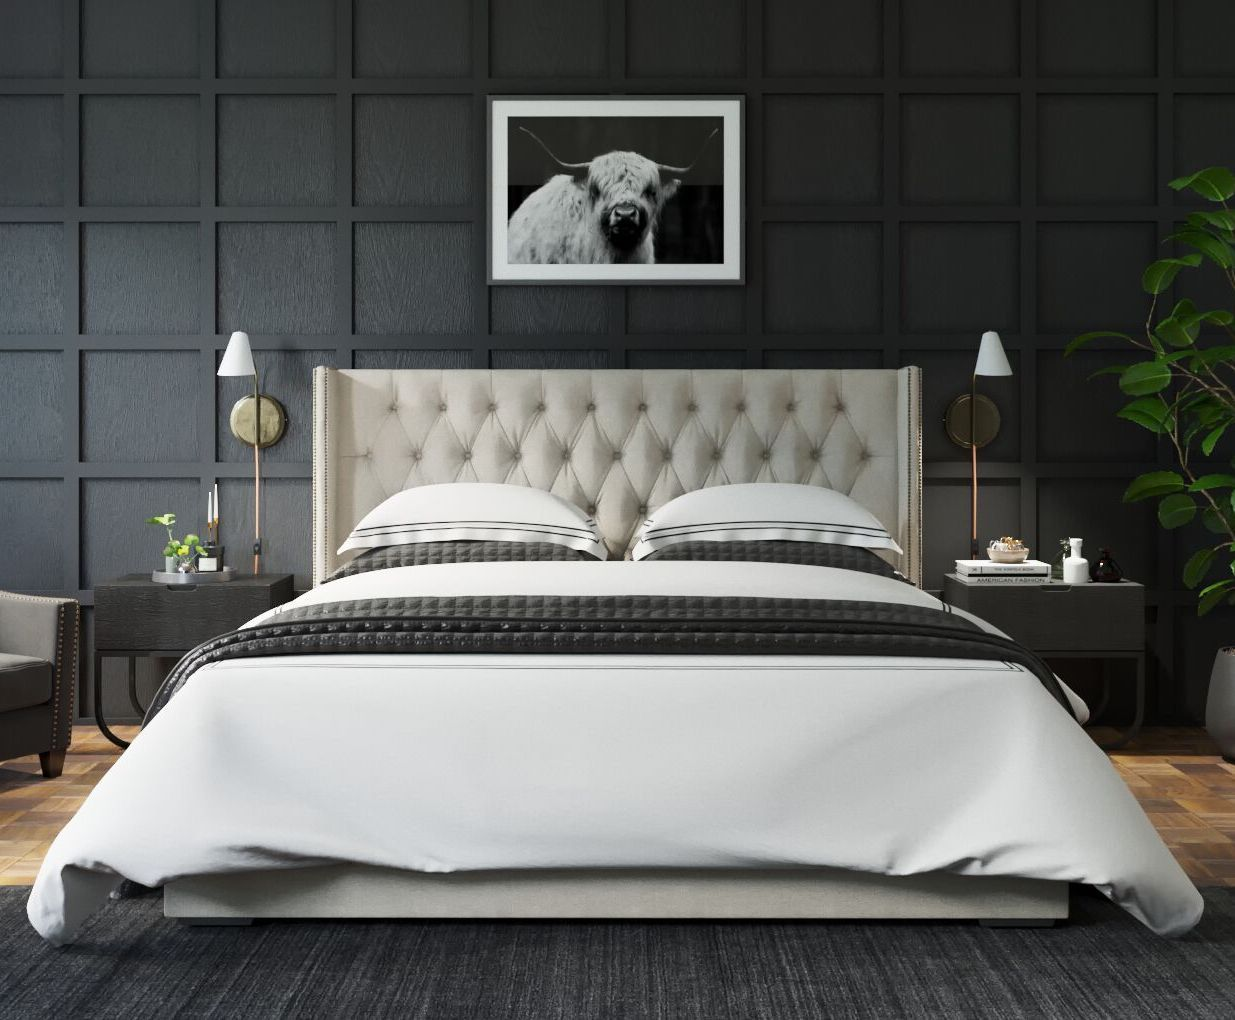 79b90f2190ac3 The Stella Gas Lift King Size Bed Frame is a beautiful and elegantly tufted  bed set